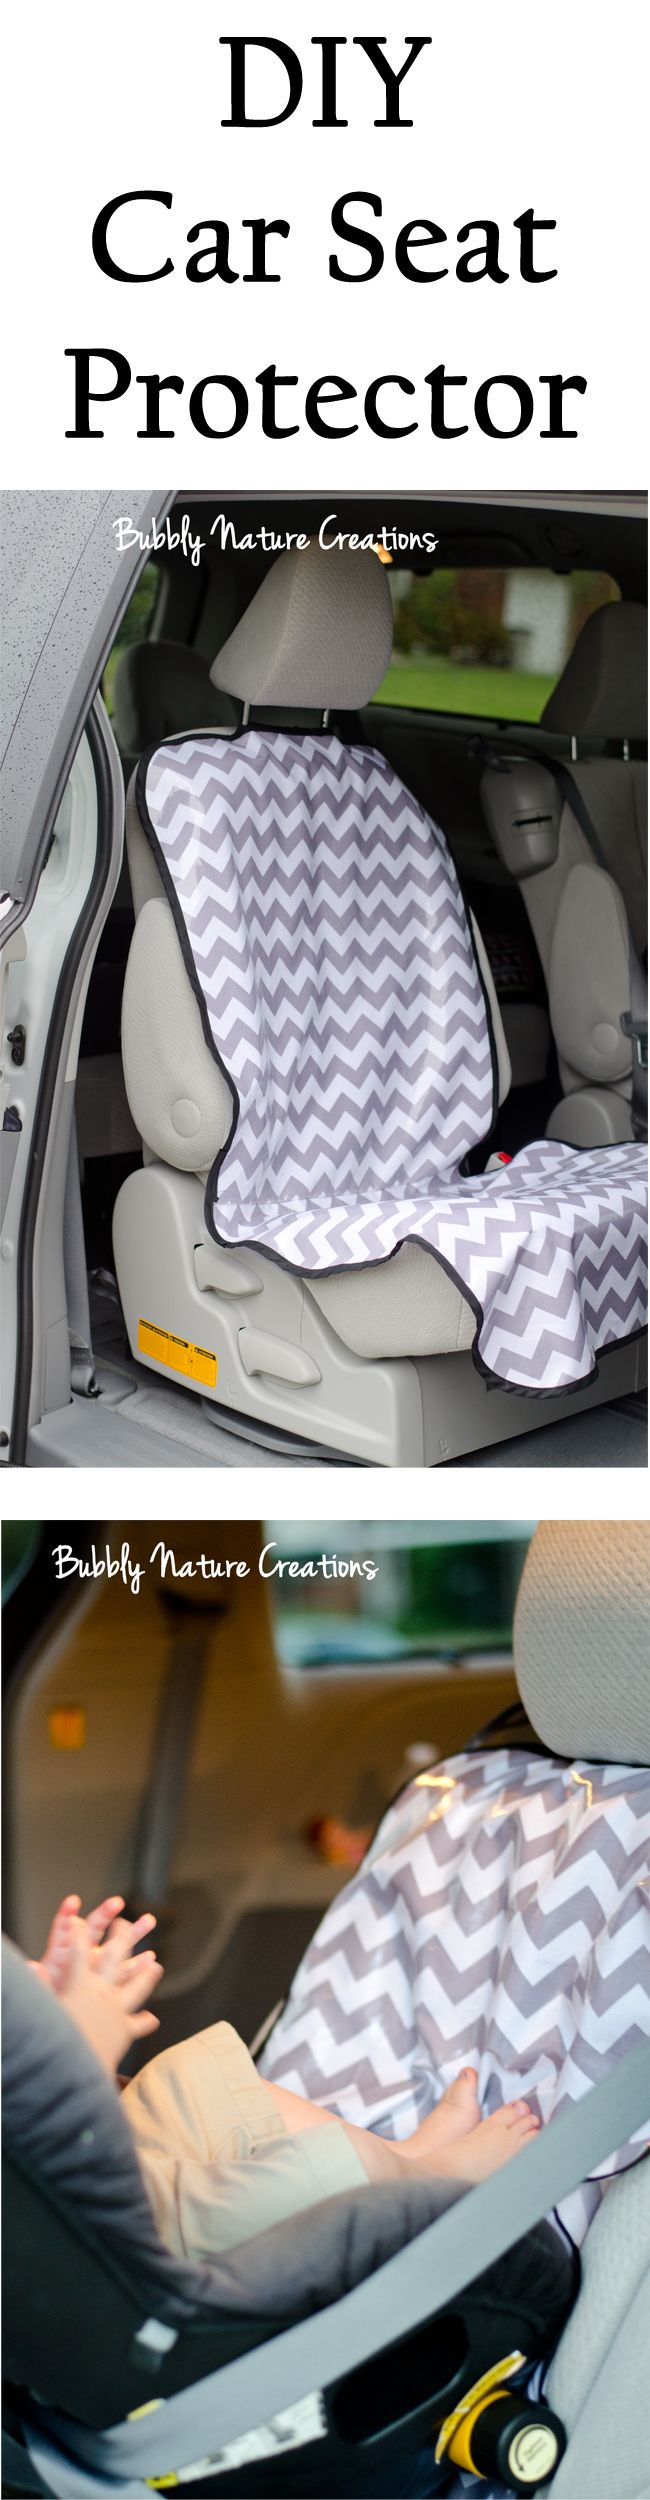 DIY Car Seat Protector. So need this. I hate it when I move the booster seats for adults and have to madly dust away crumbs.